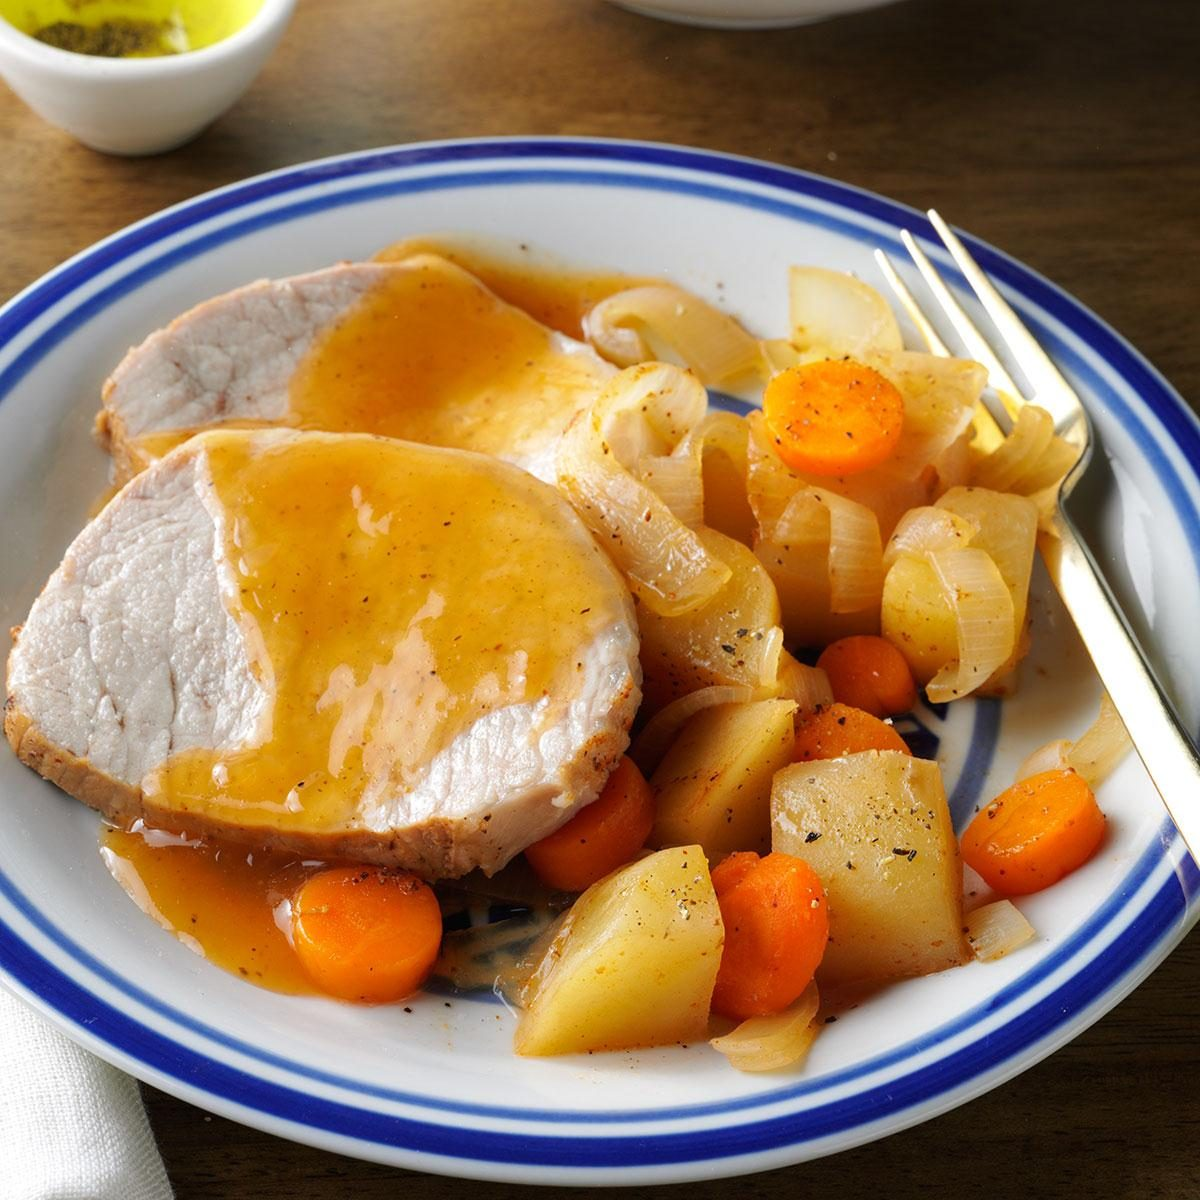 What Is Good To Cook For Dinner: Slow-Cooked Pork Roast Dinner Recipe